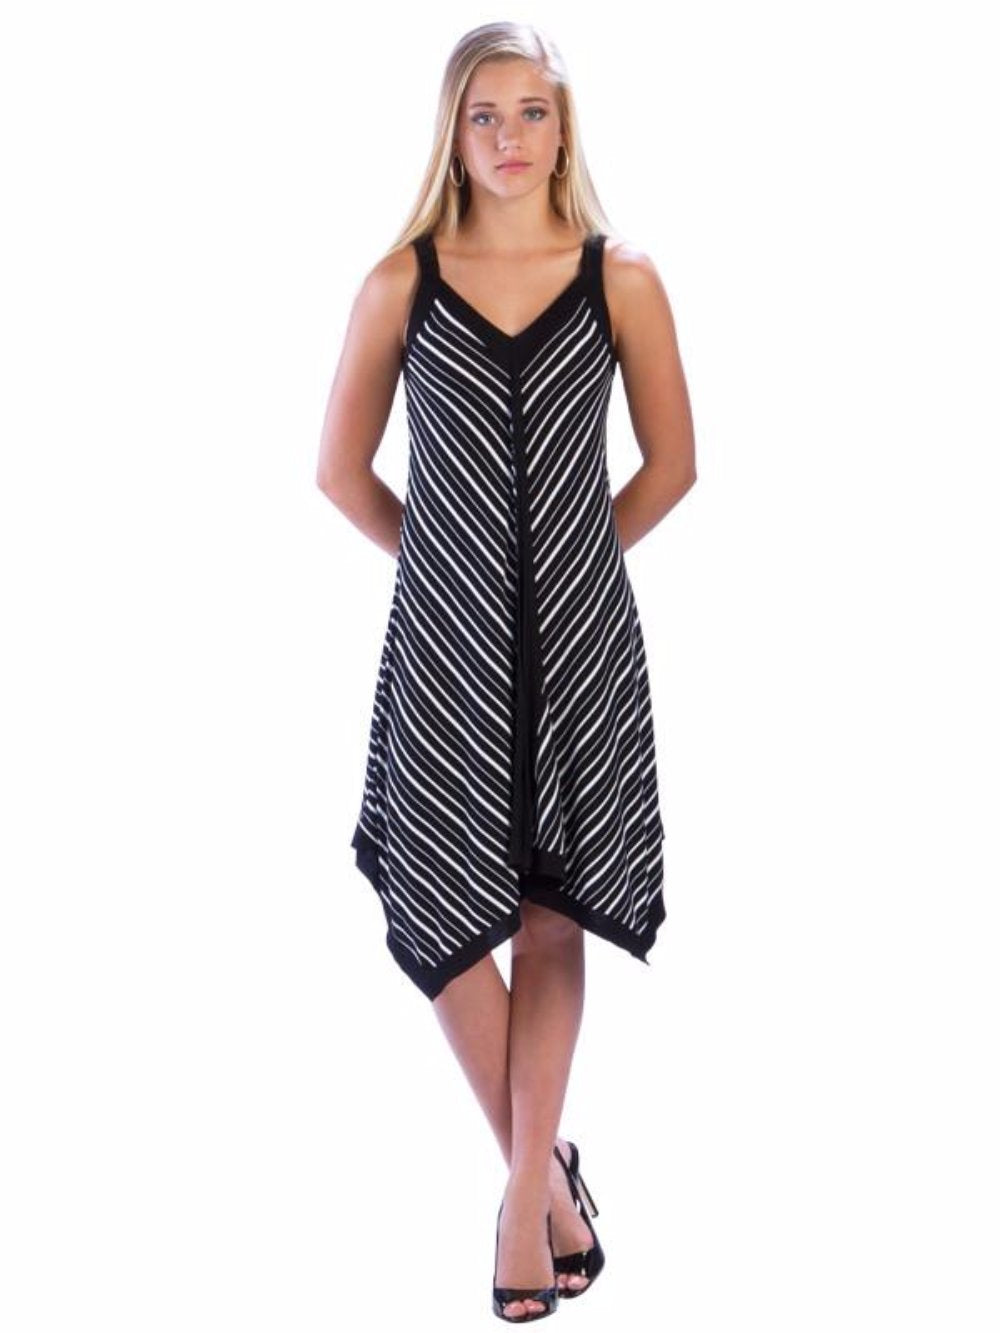 Irregular Hem Dress Black and White Striped